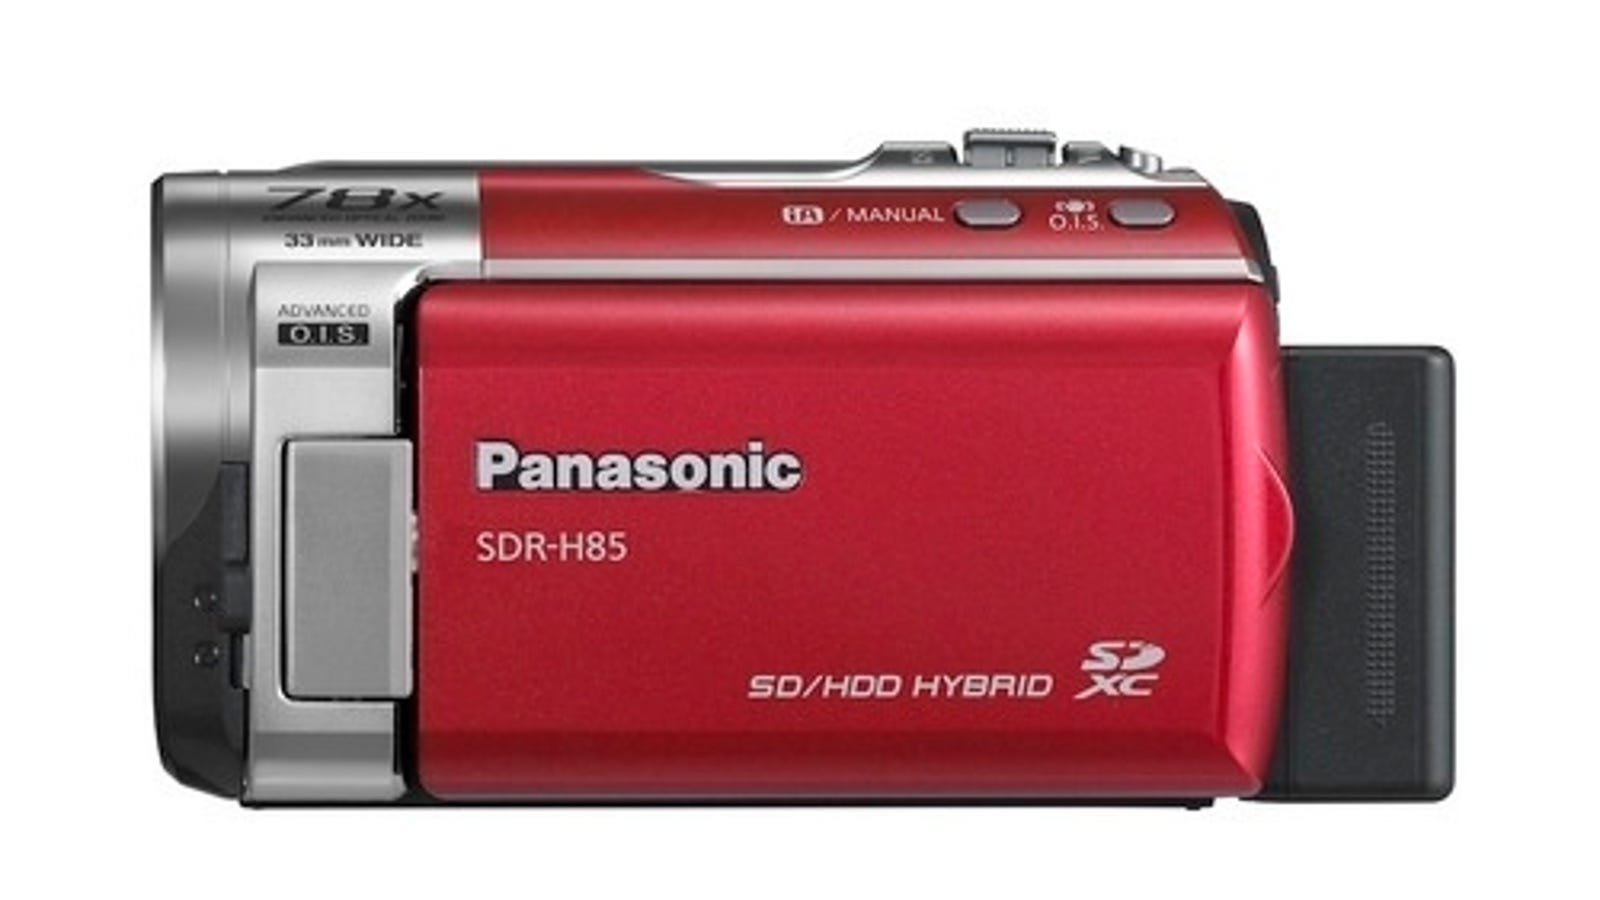 Panasonic Adds Standard Def SDR-H85, SDR-T50 and SDR-S50 To Camcorder Range